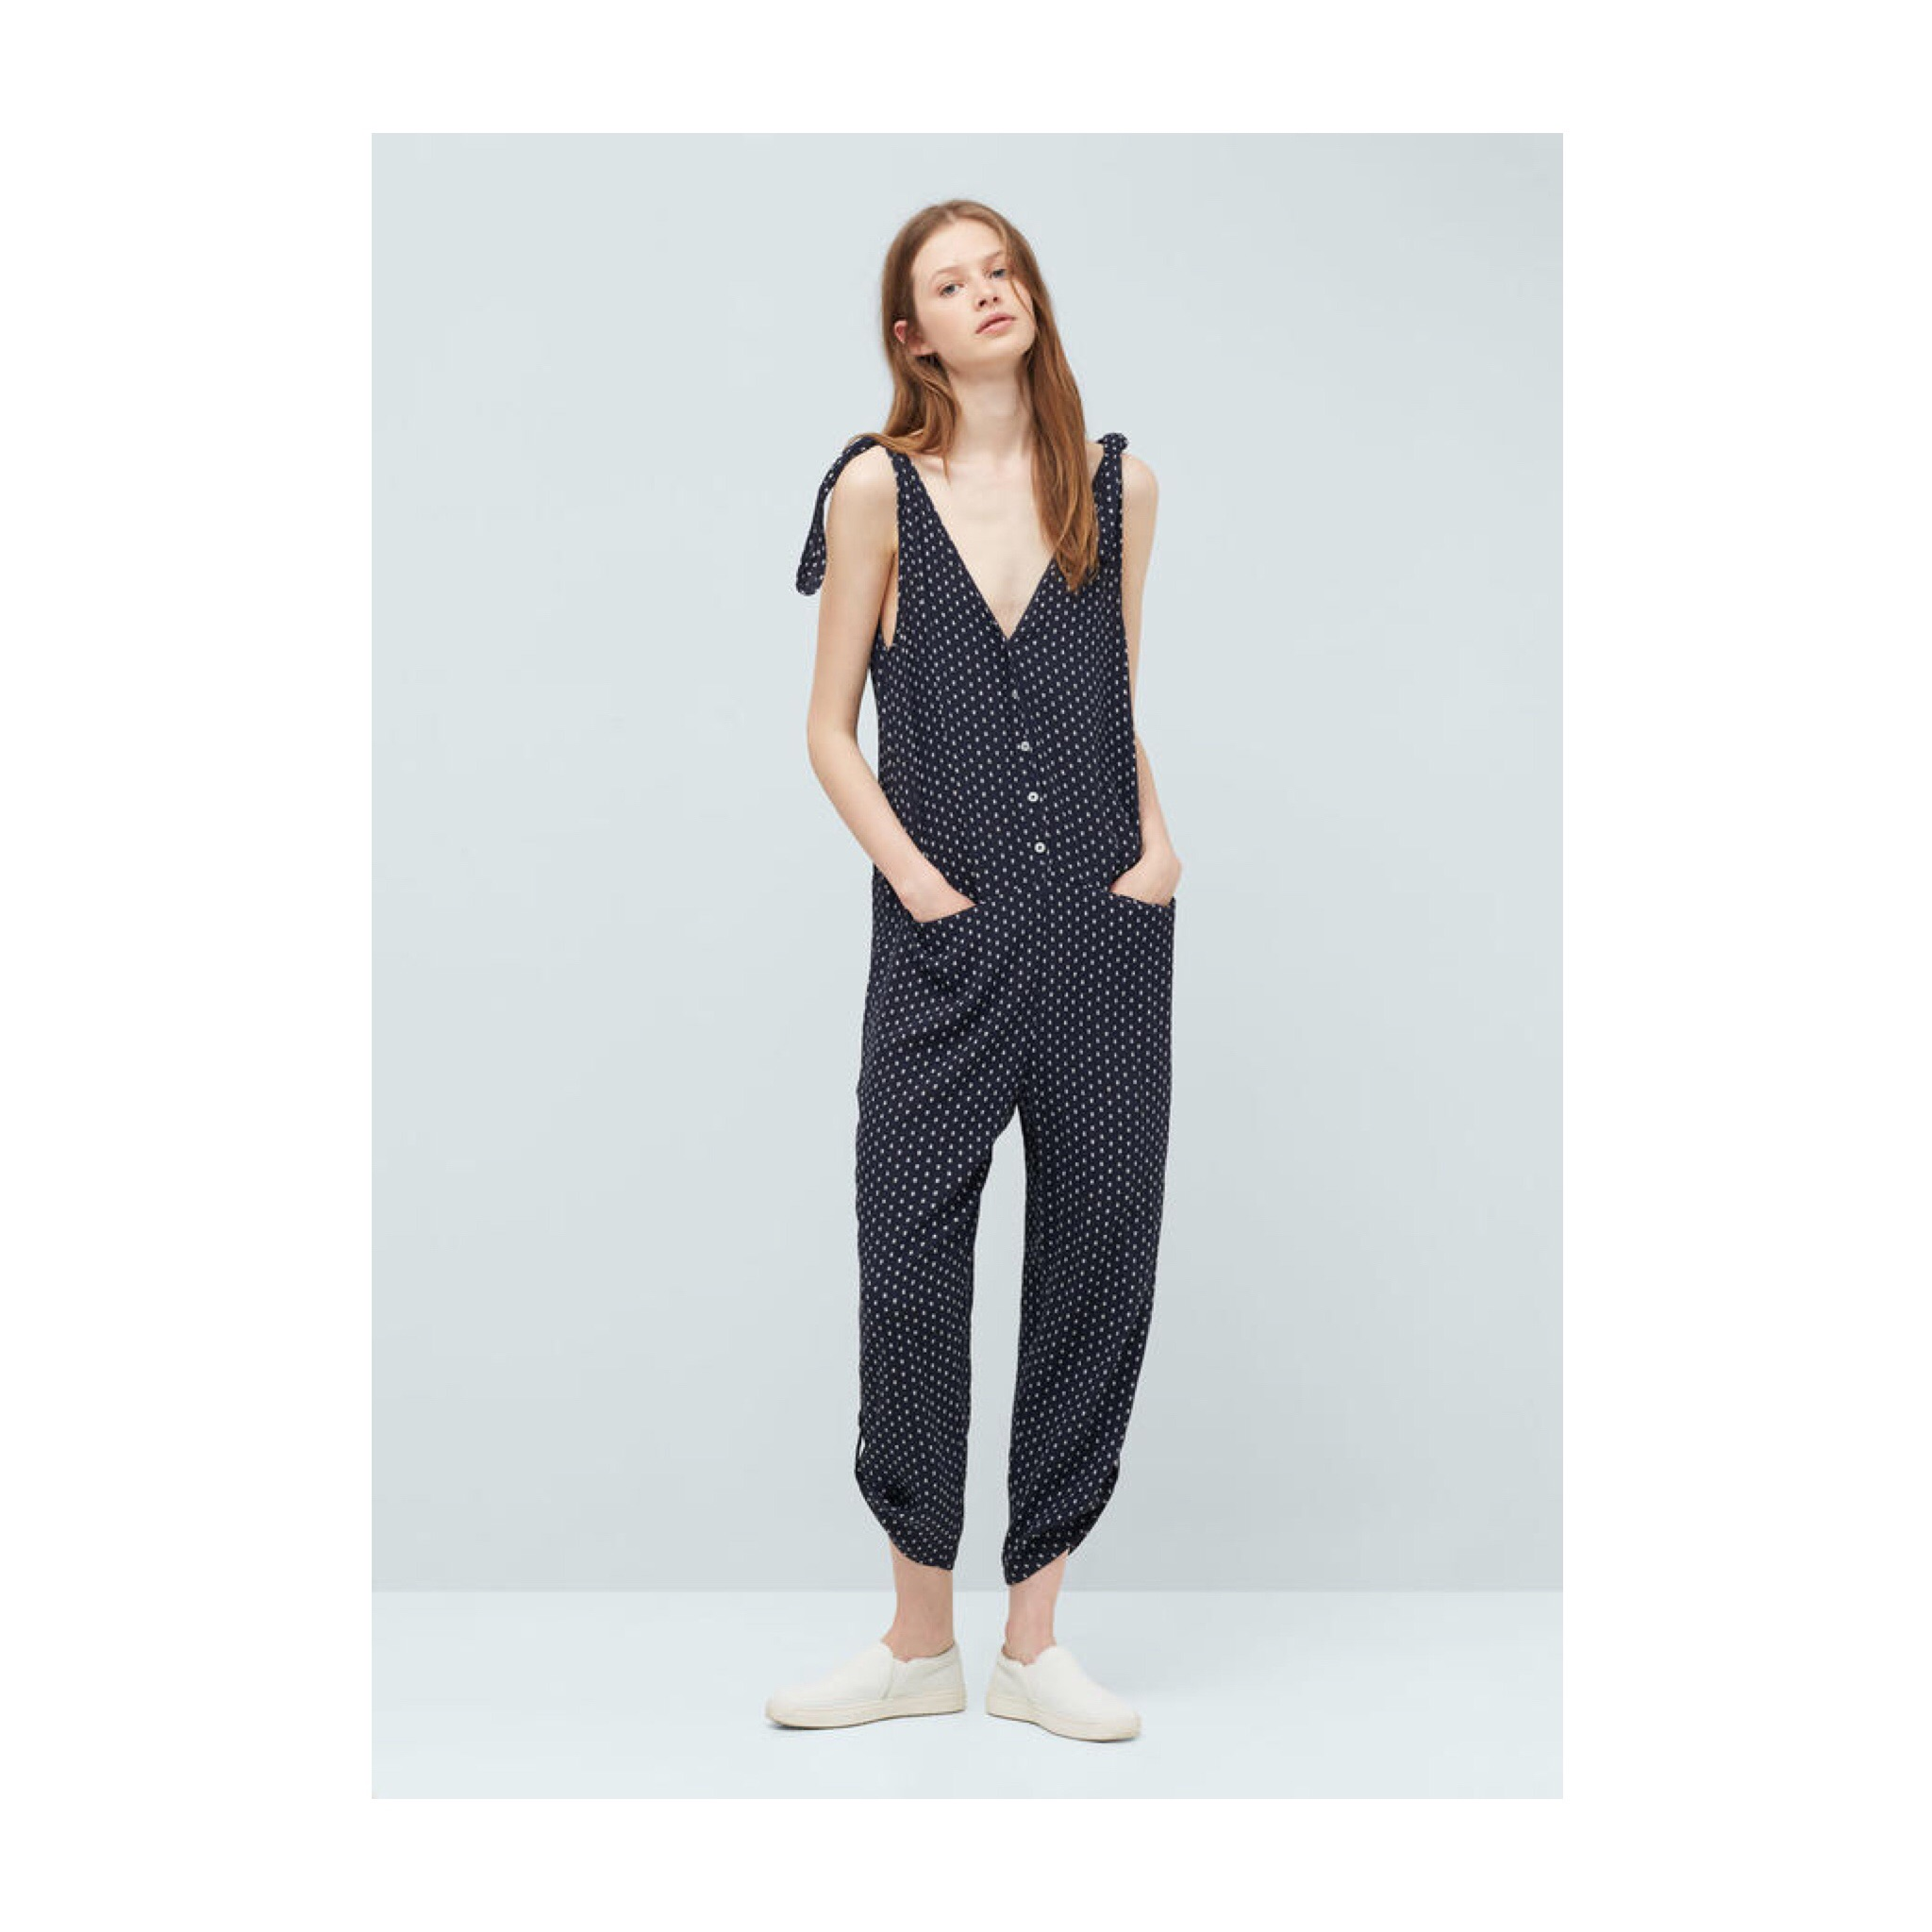 Mango Jumpsuit ... My top pick this summer, I am living in this lightweight jumpsuit from Mango. It's SO comfy!